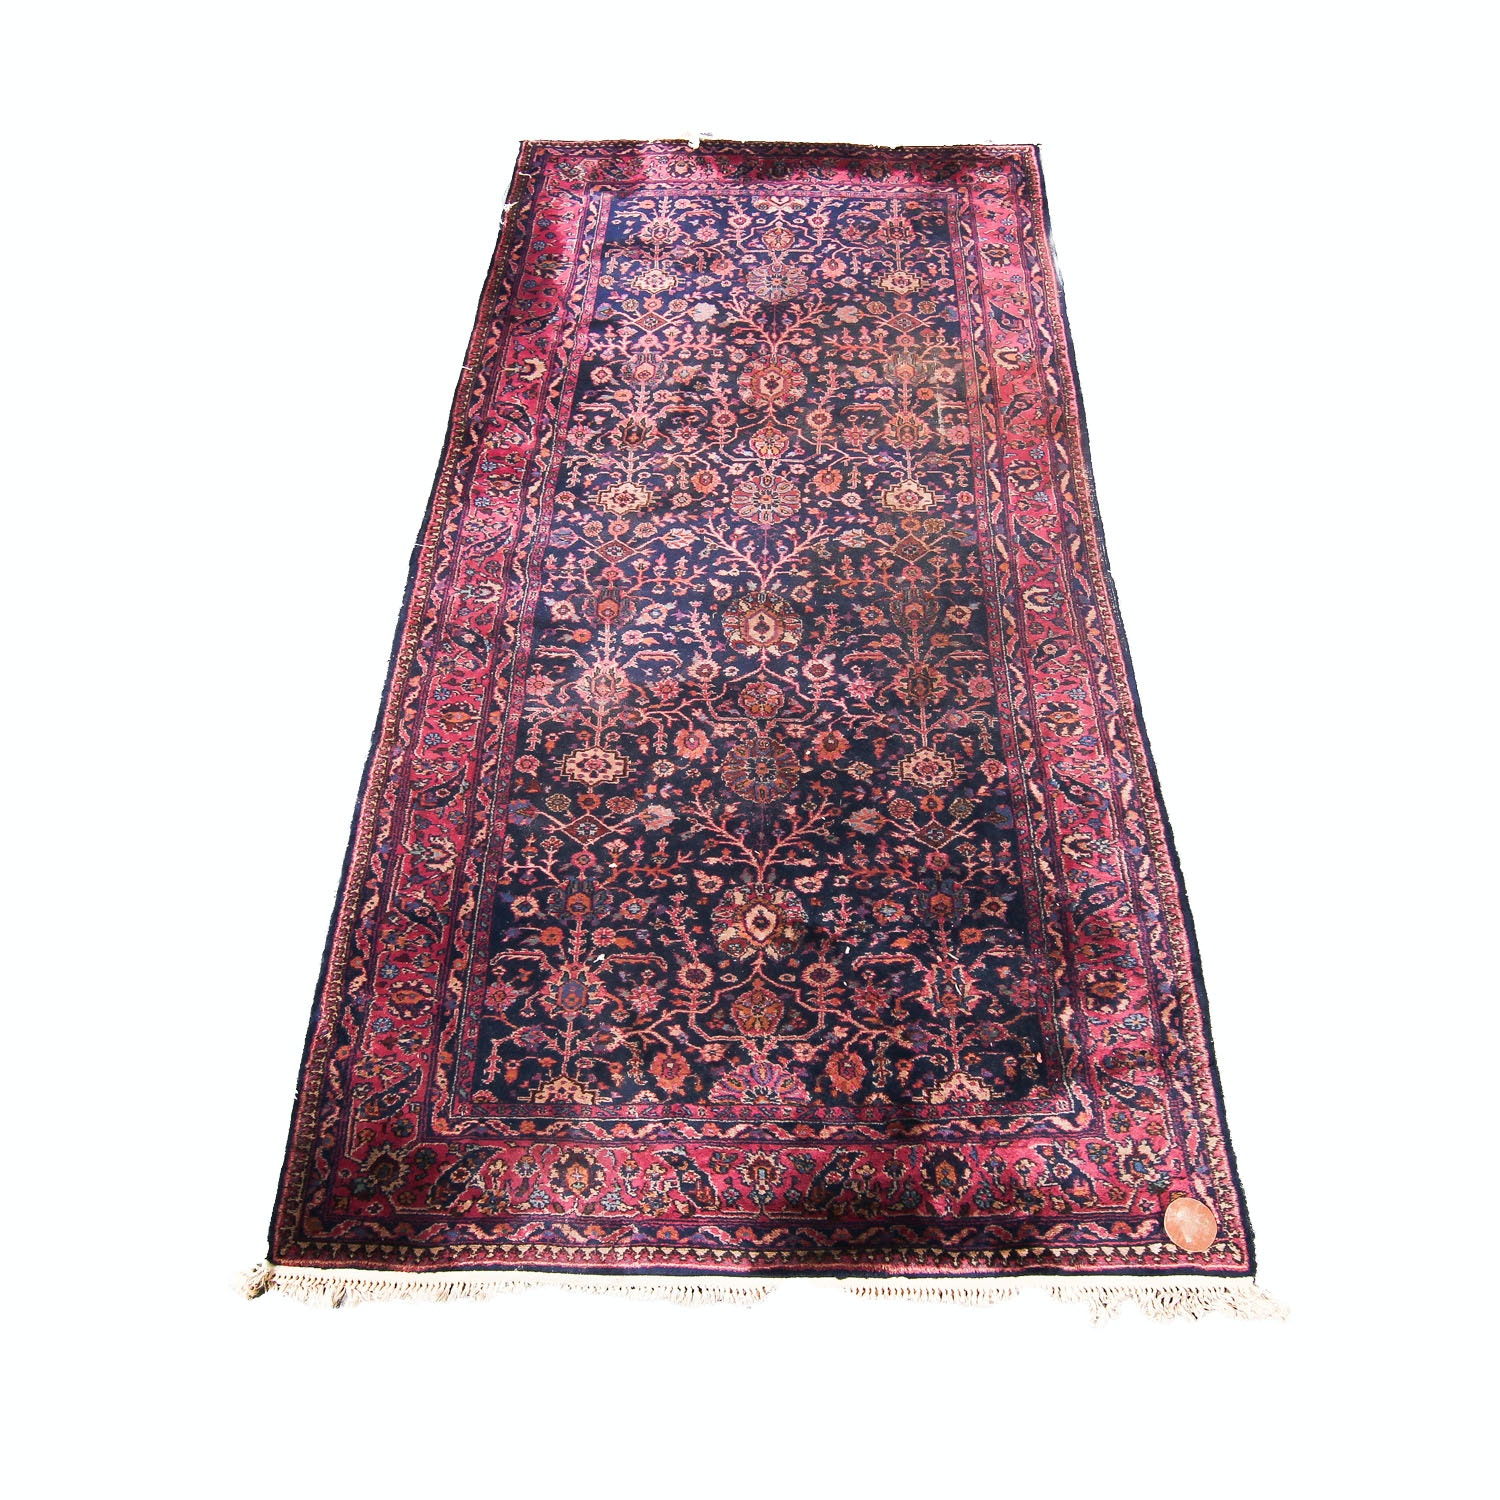 Hand-Knotted Turkish Floral Wool Area Rug